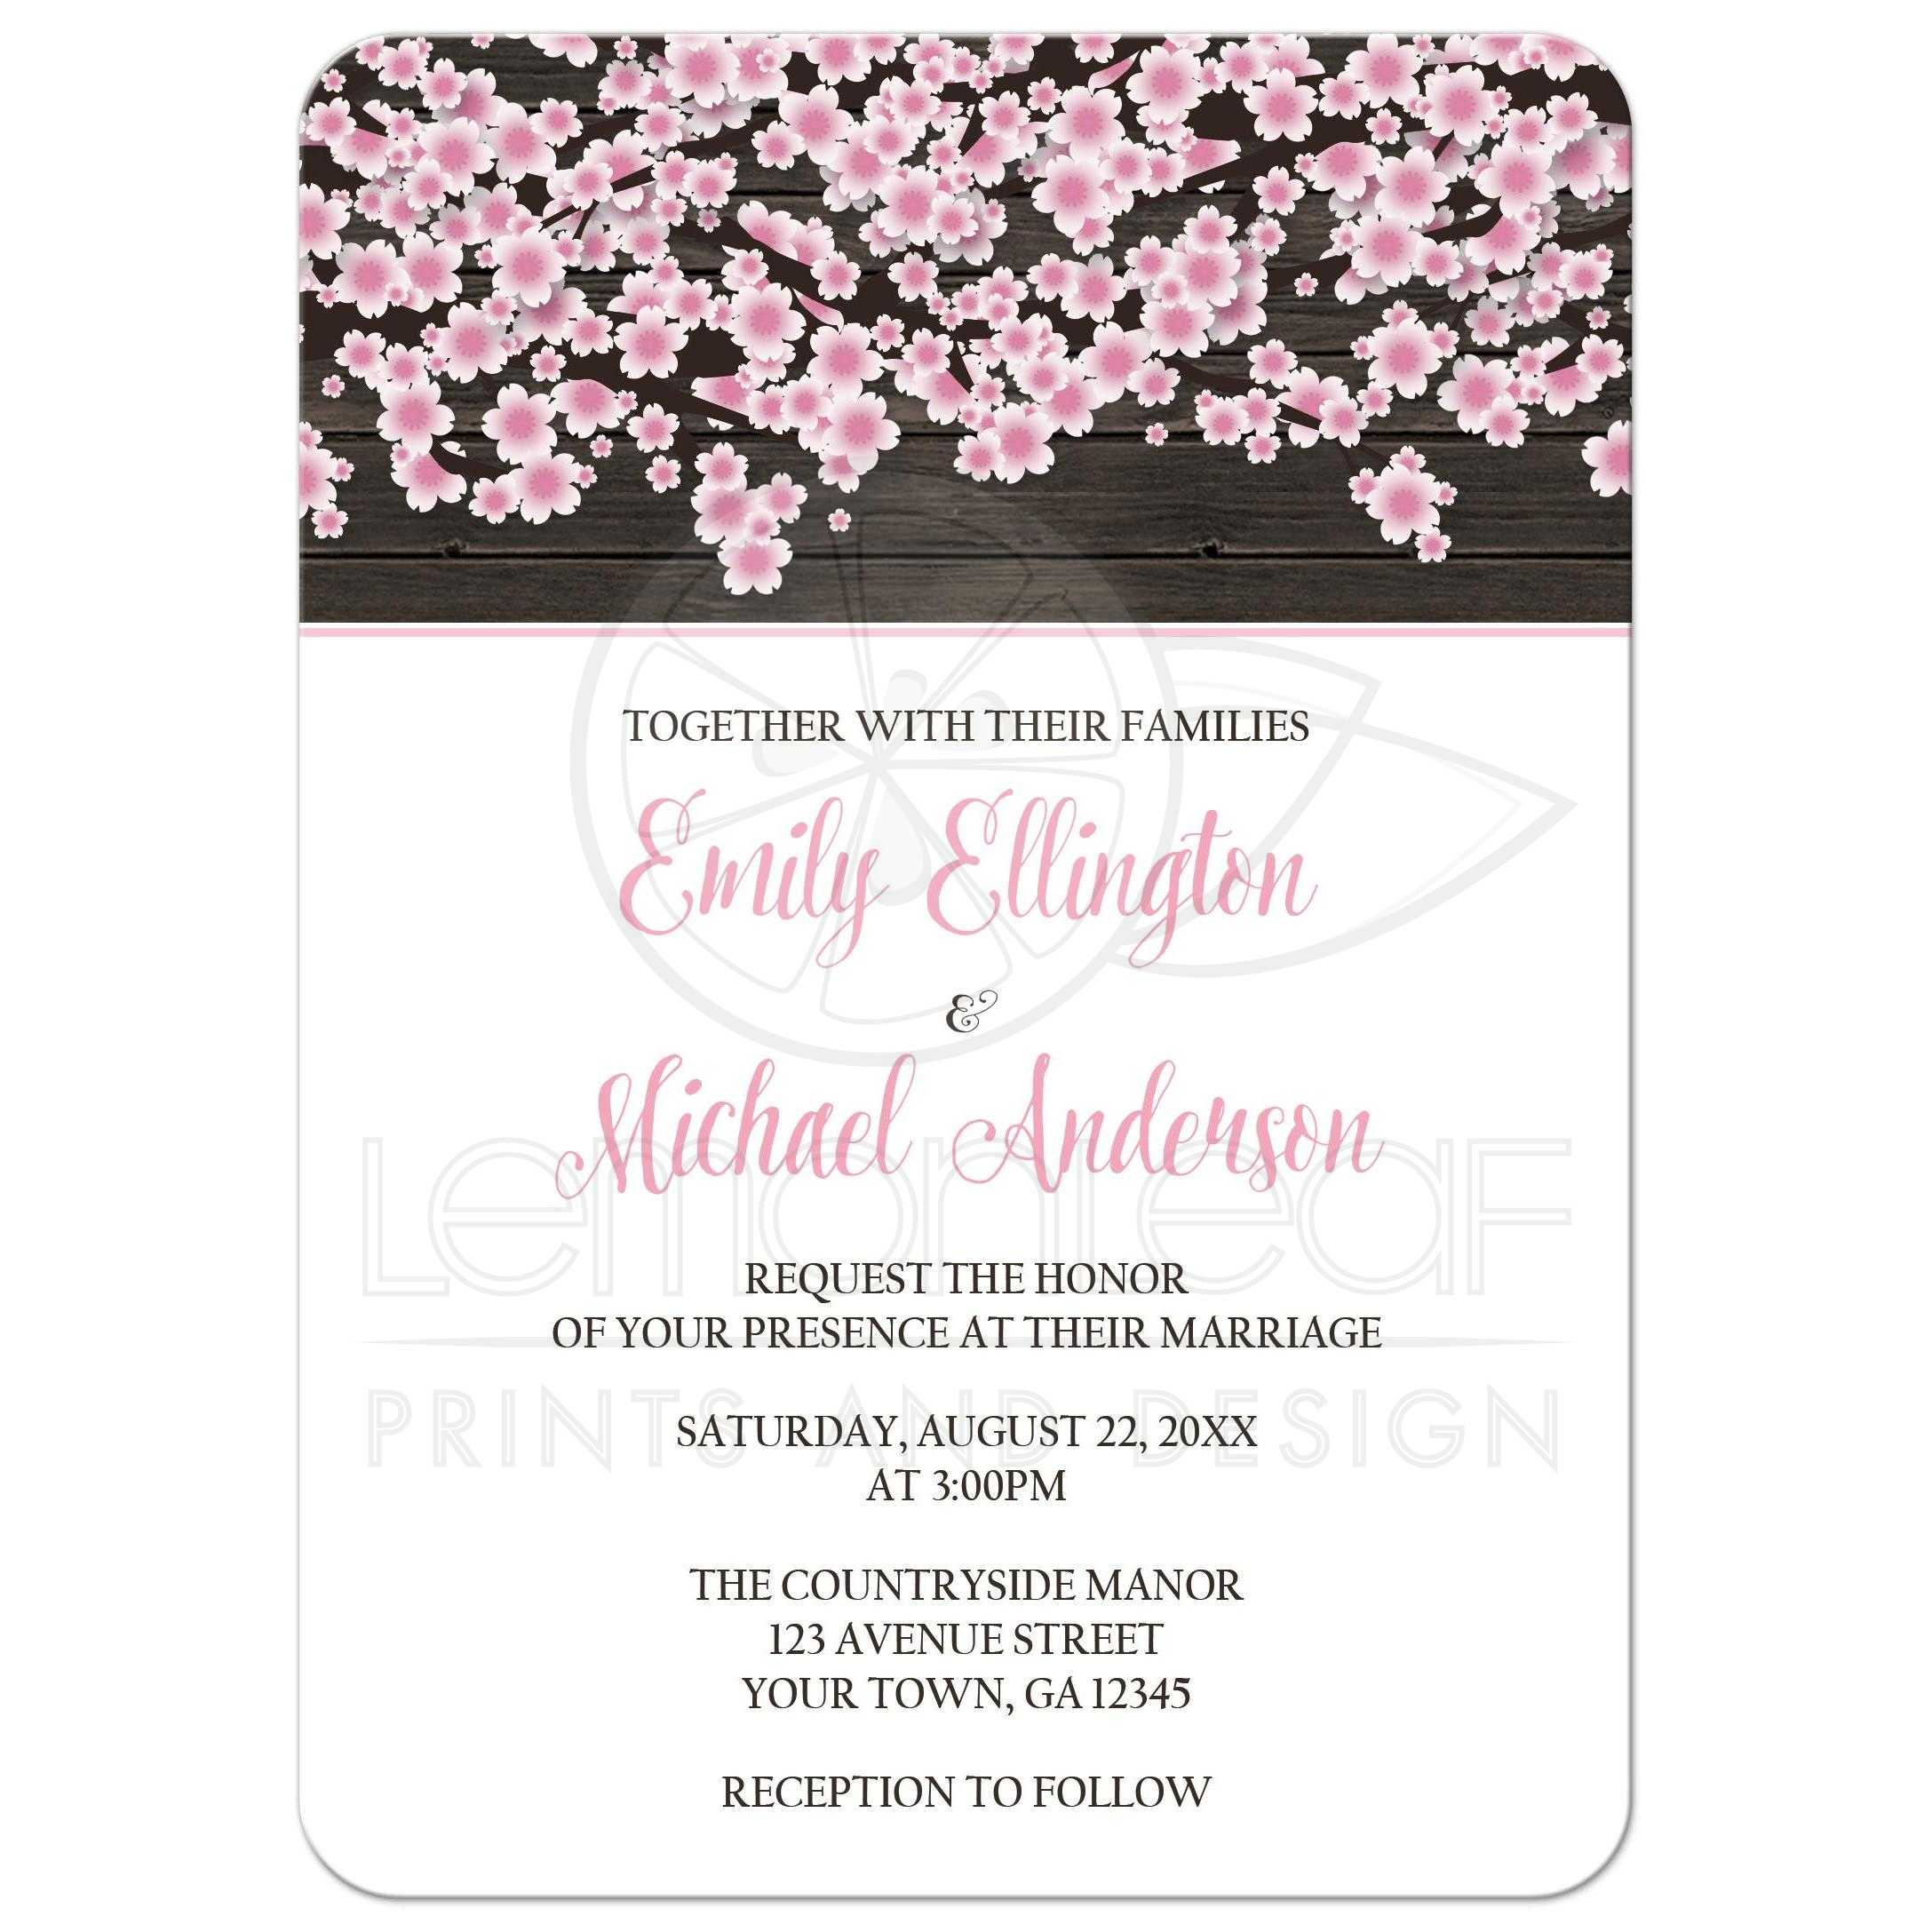 wedding invitations cherry blossom rustic wood white